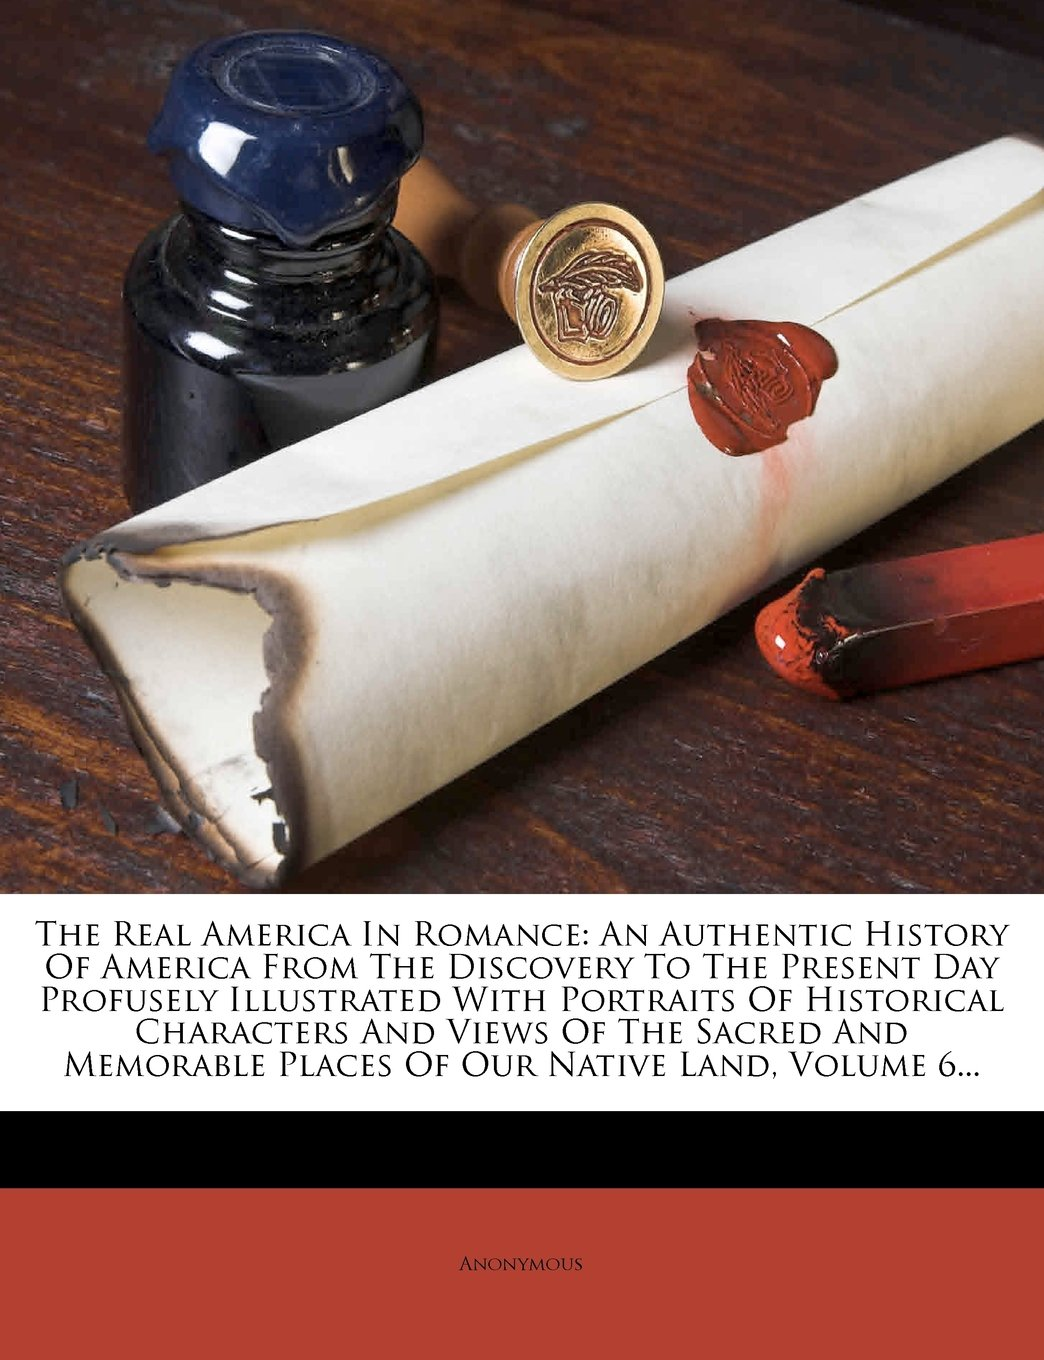 Read Online The Real America In Romance: An Authentic History Of America From The Discovery To The Present Day Profusely Illustrated With Portraits Of Historical ... Places Of Our Native Land, Volume 6... pdf